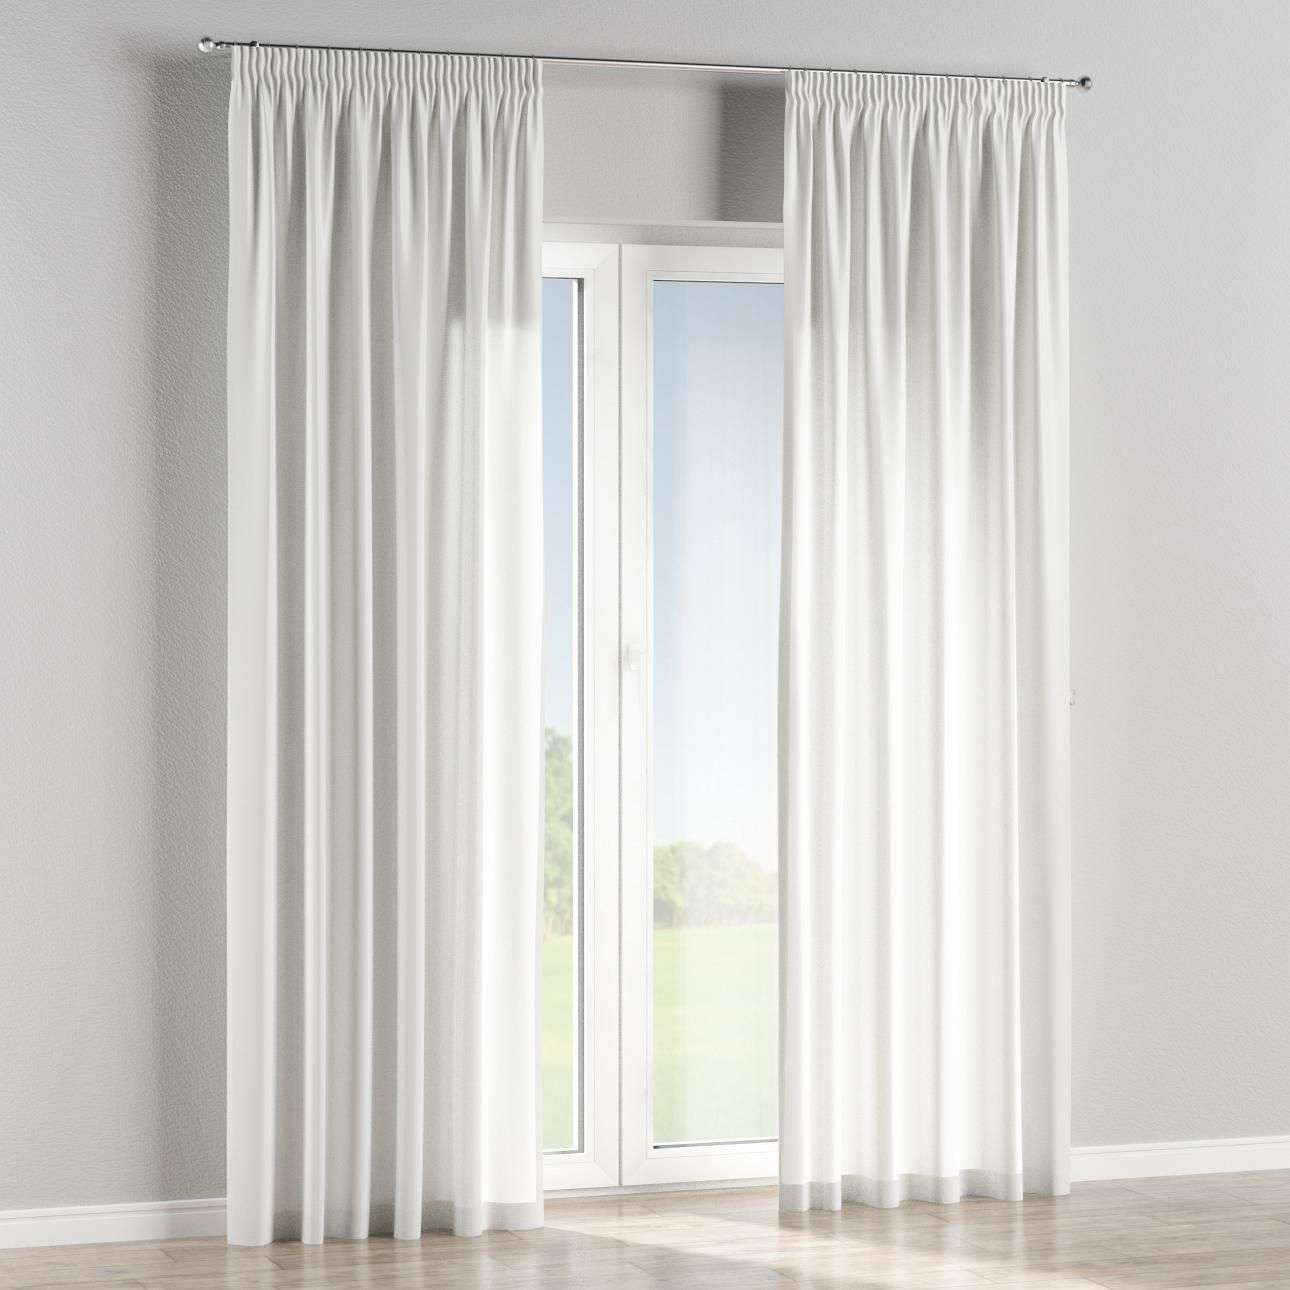 Pencil pleat curtains in collection Milano, fabric: 150-23